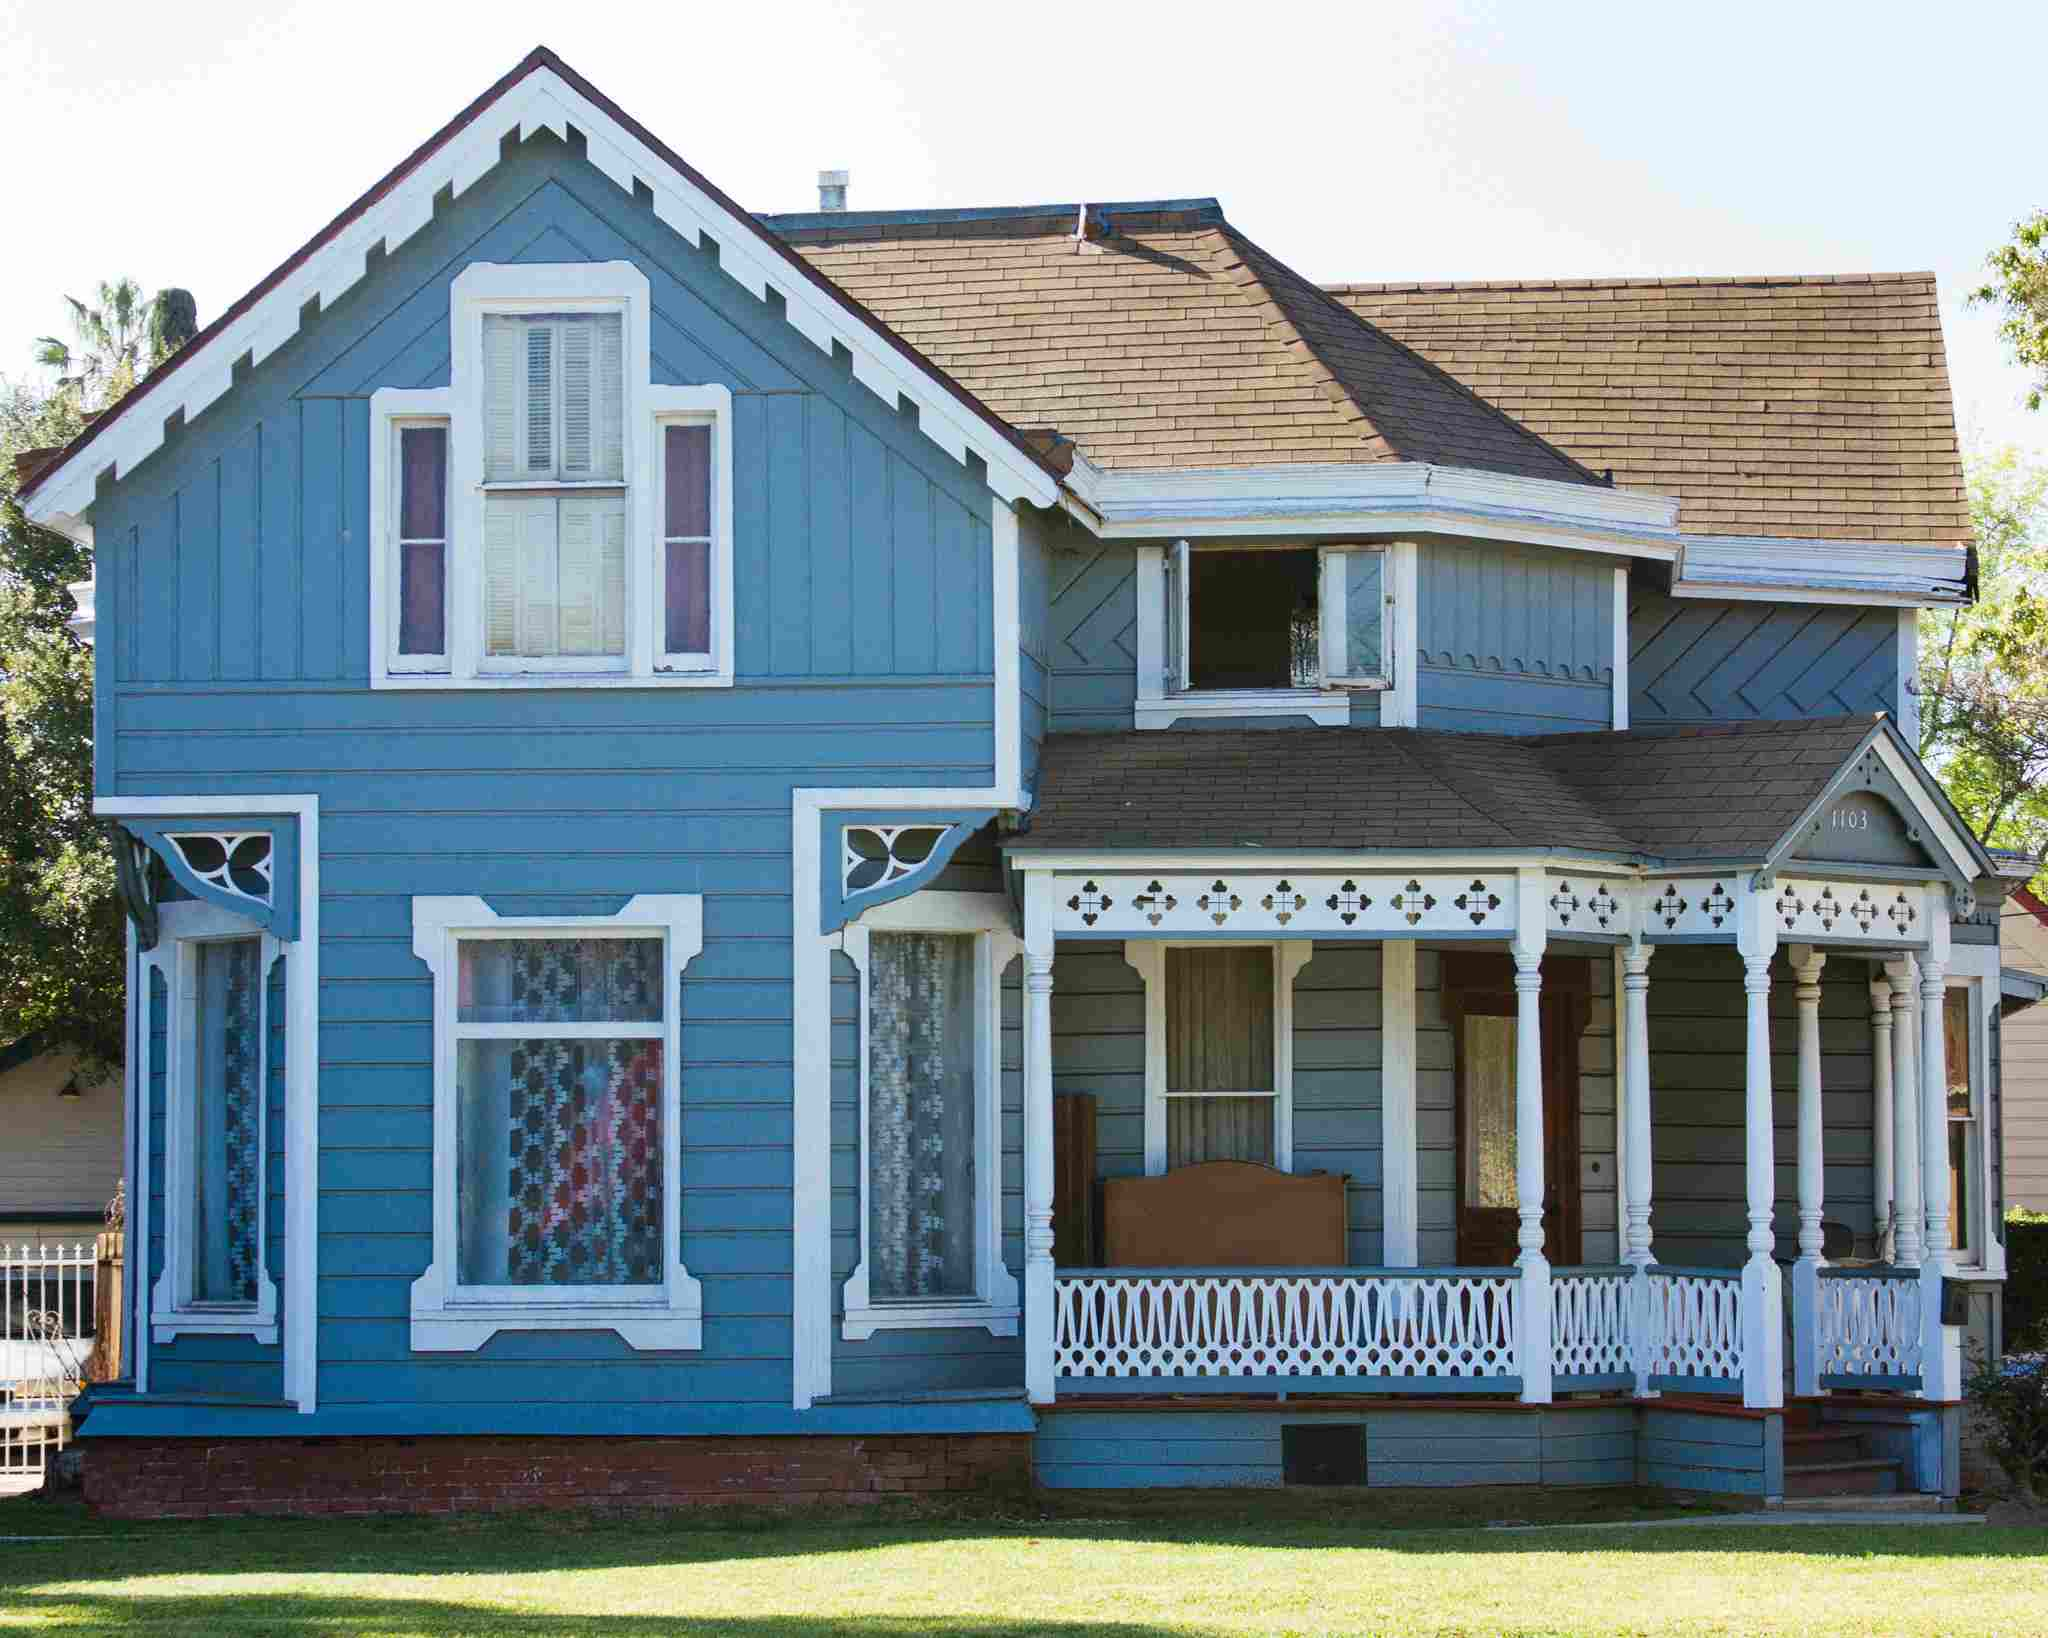 Houses of Blue s to Inspire your Next Paint Job